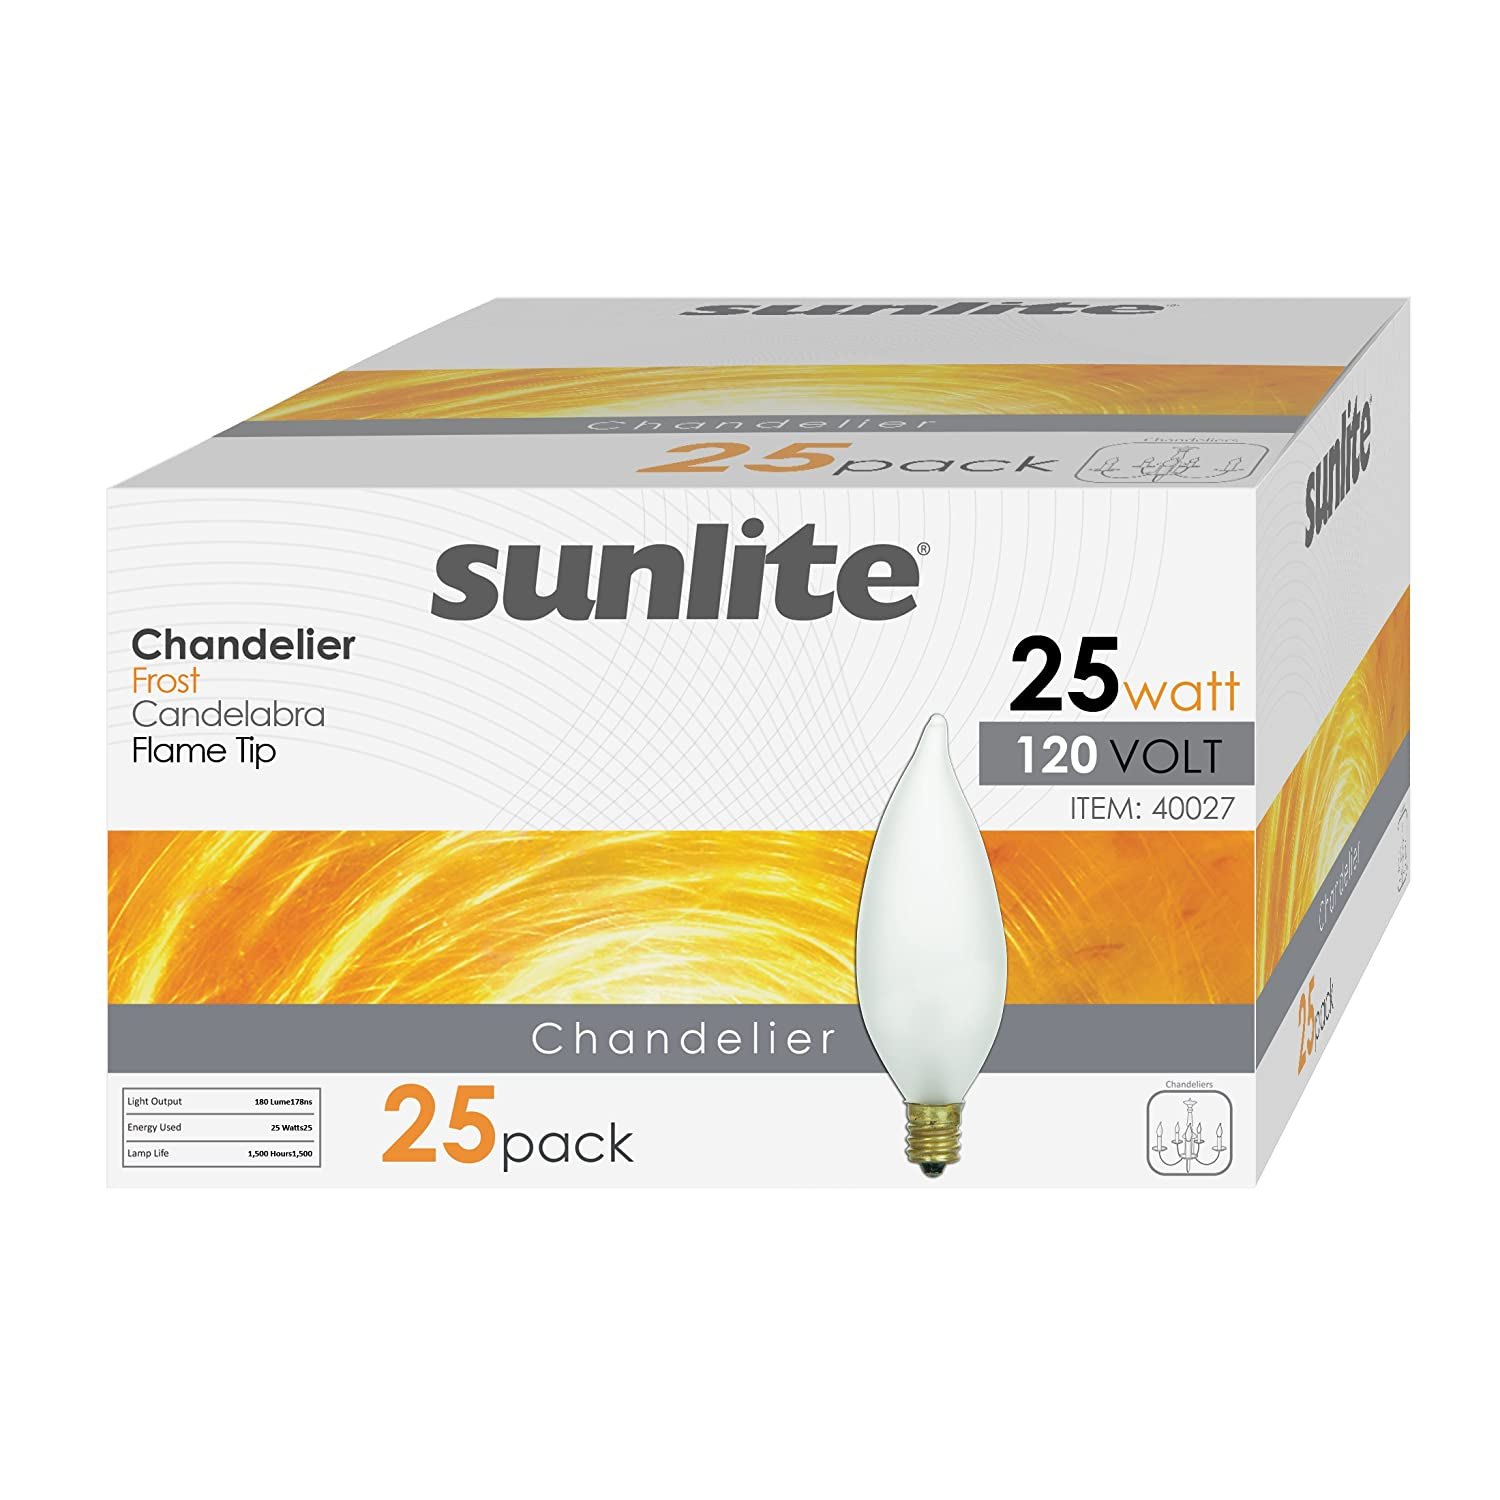 Dimmable Sunlite 40025-SU 25-Pack Flame Tip Chandelier Light Bulbs 25 Watts Clear 25 Pack Warm White Piece Incandescent Candelabra Base 32K E12 120 Volt